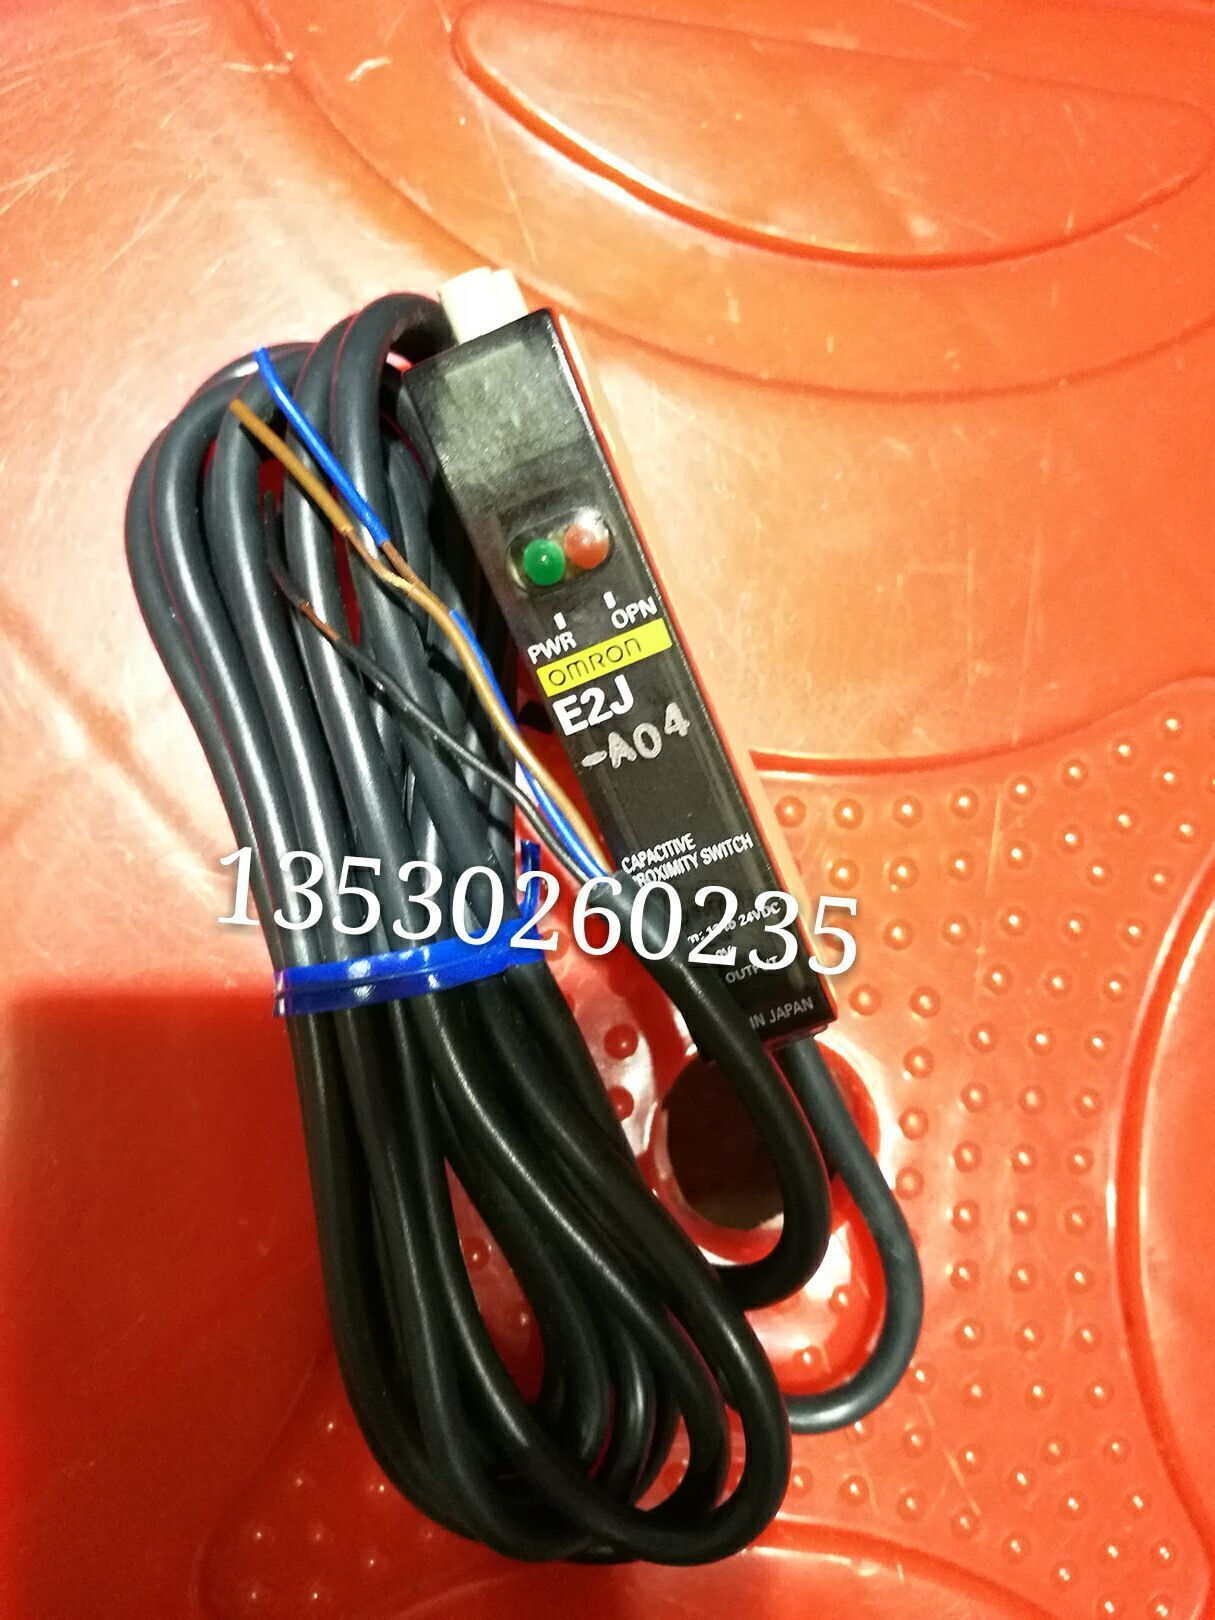 E2j A04 Photoelectric Switch Light Accessories Electrical Equipment Accessories